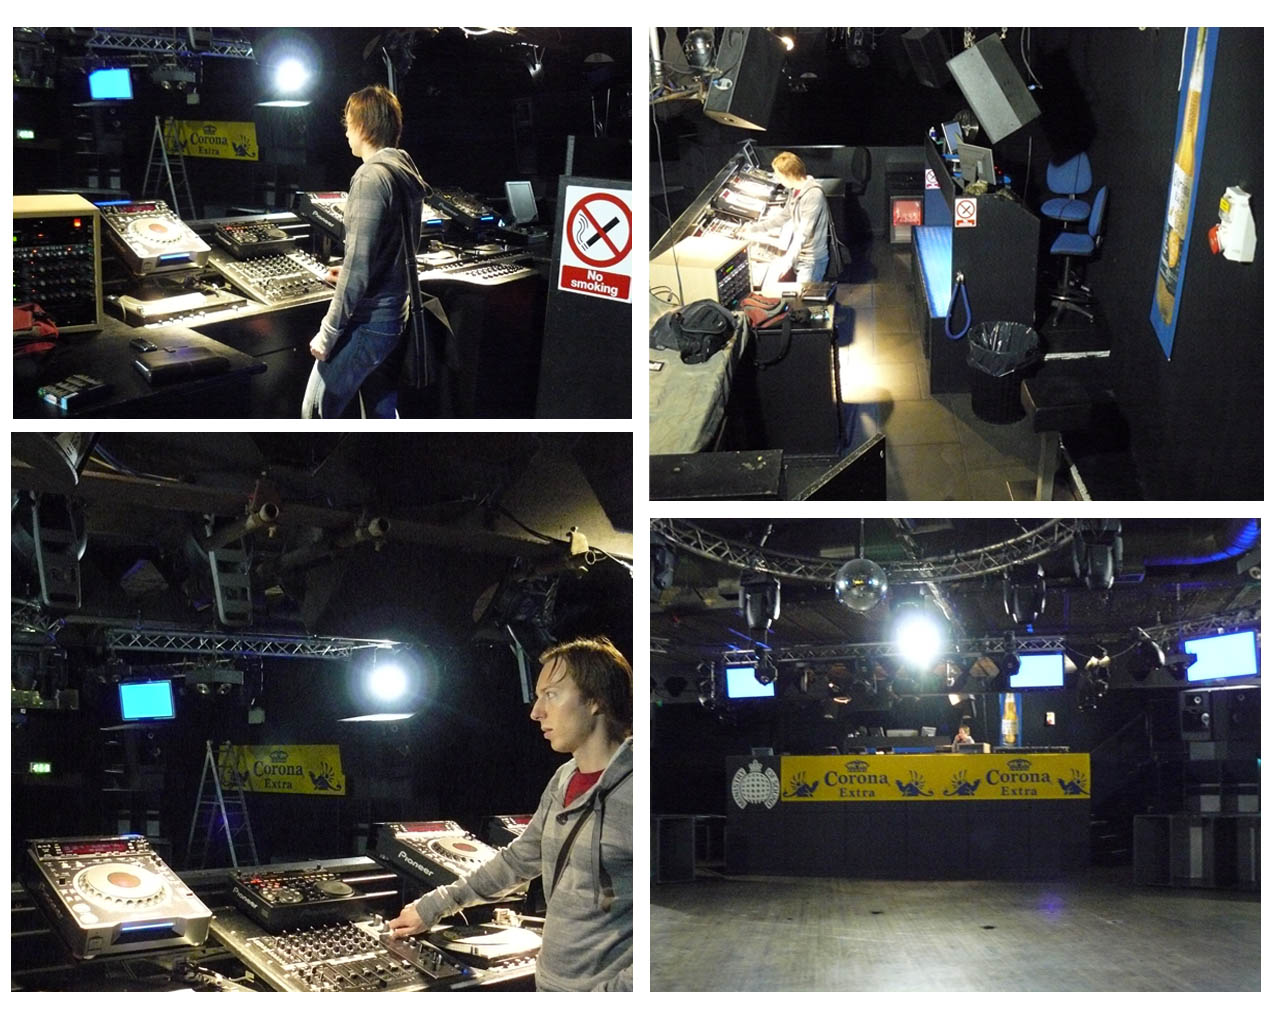 Photos taken of the Ministry of Sound DJ Booth during my Recce